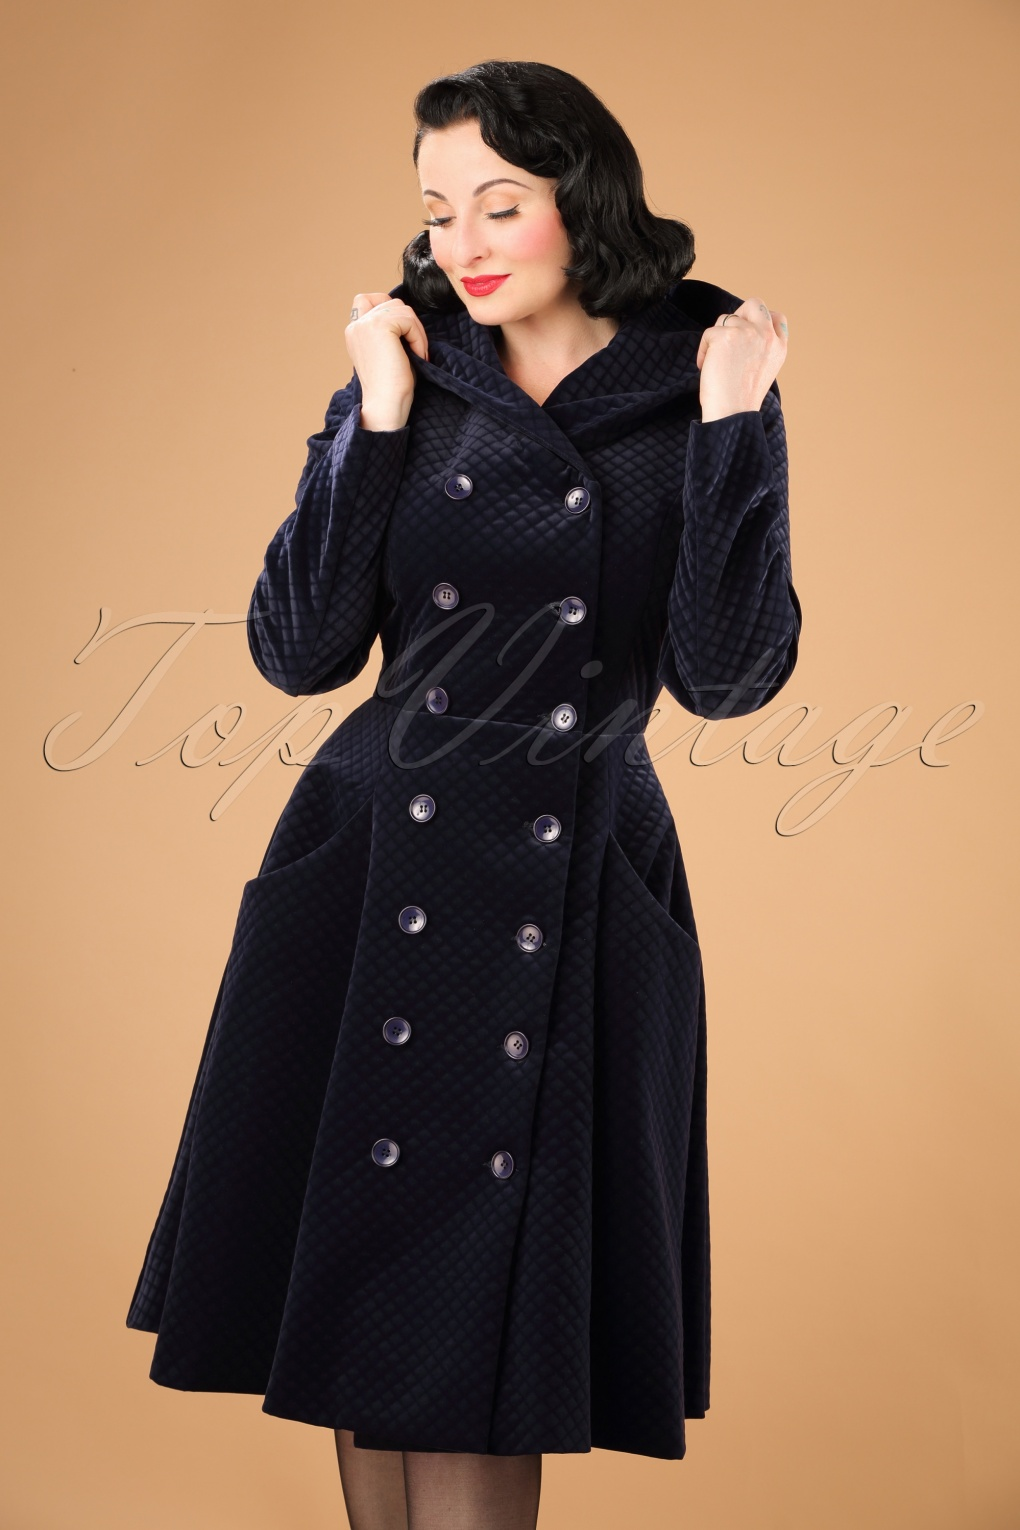 1950s Jackets and Coats | Swing, Pin Up, Rockabilly 50s Heather Hooded Quilted Velvet Coat in Navy £183.66 AT vintagedancer.com